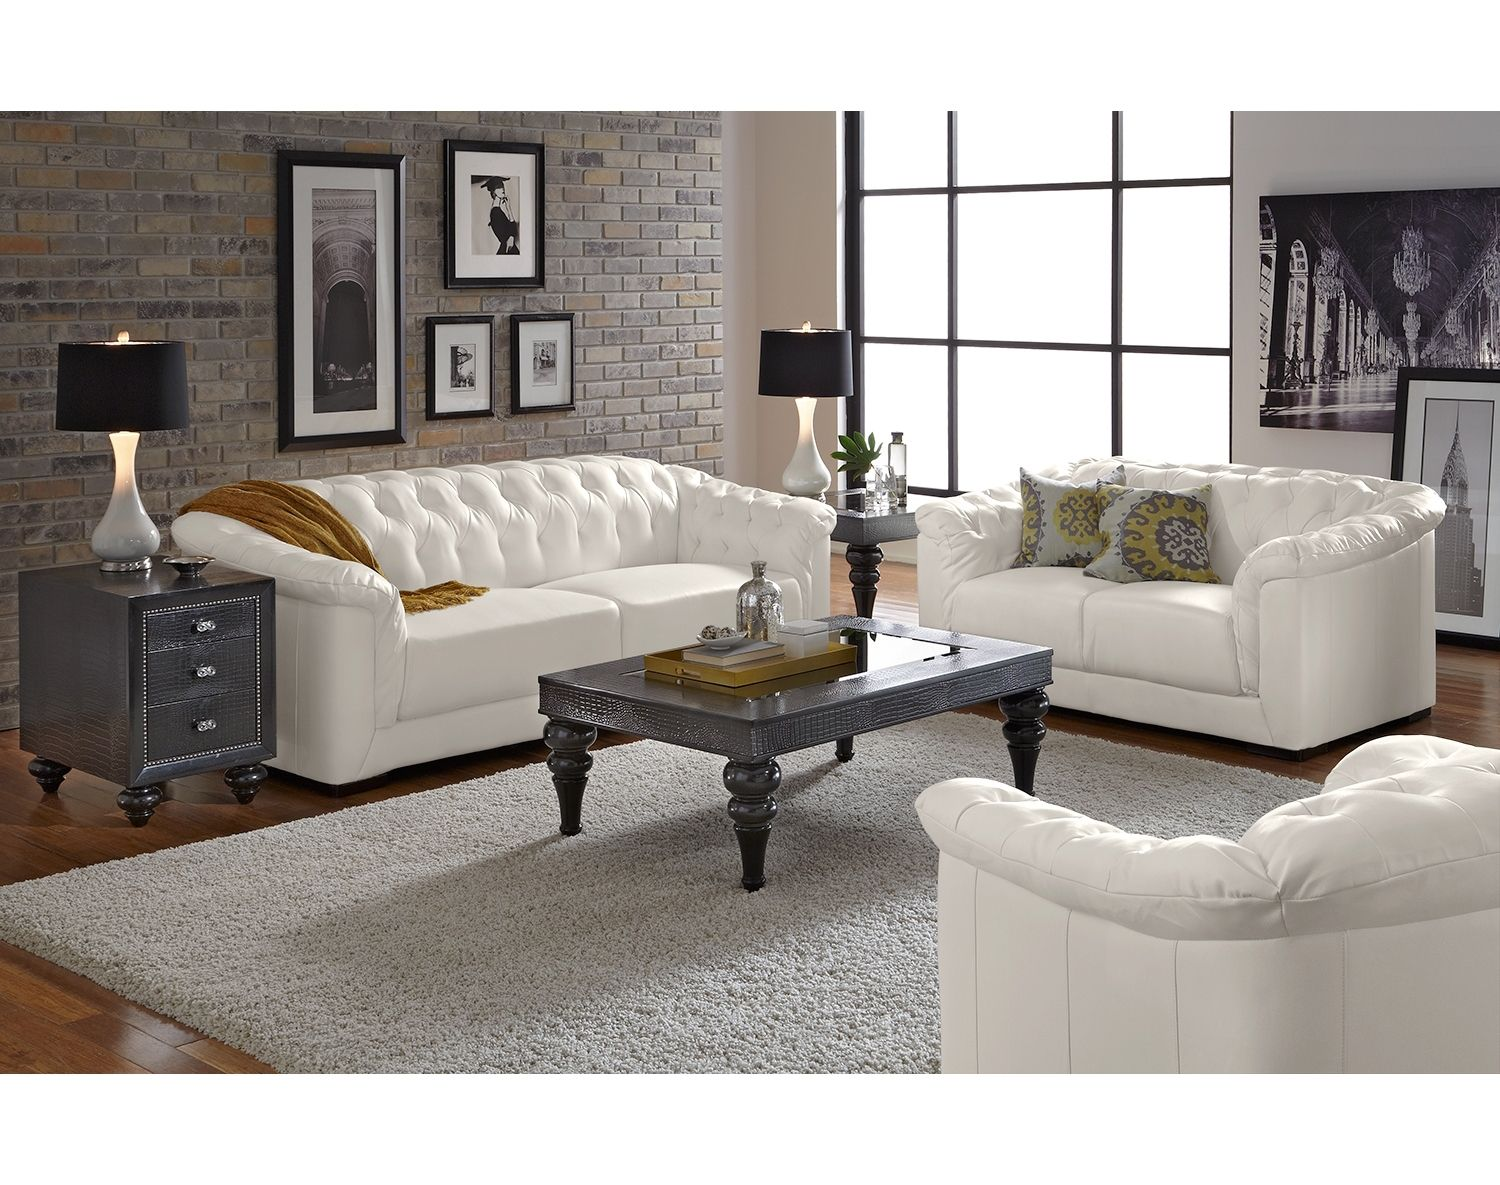 The Giorgio Collection Leather Sofa Living Room Leather Living Room Set White Furniture Living Room